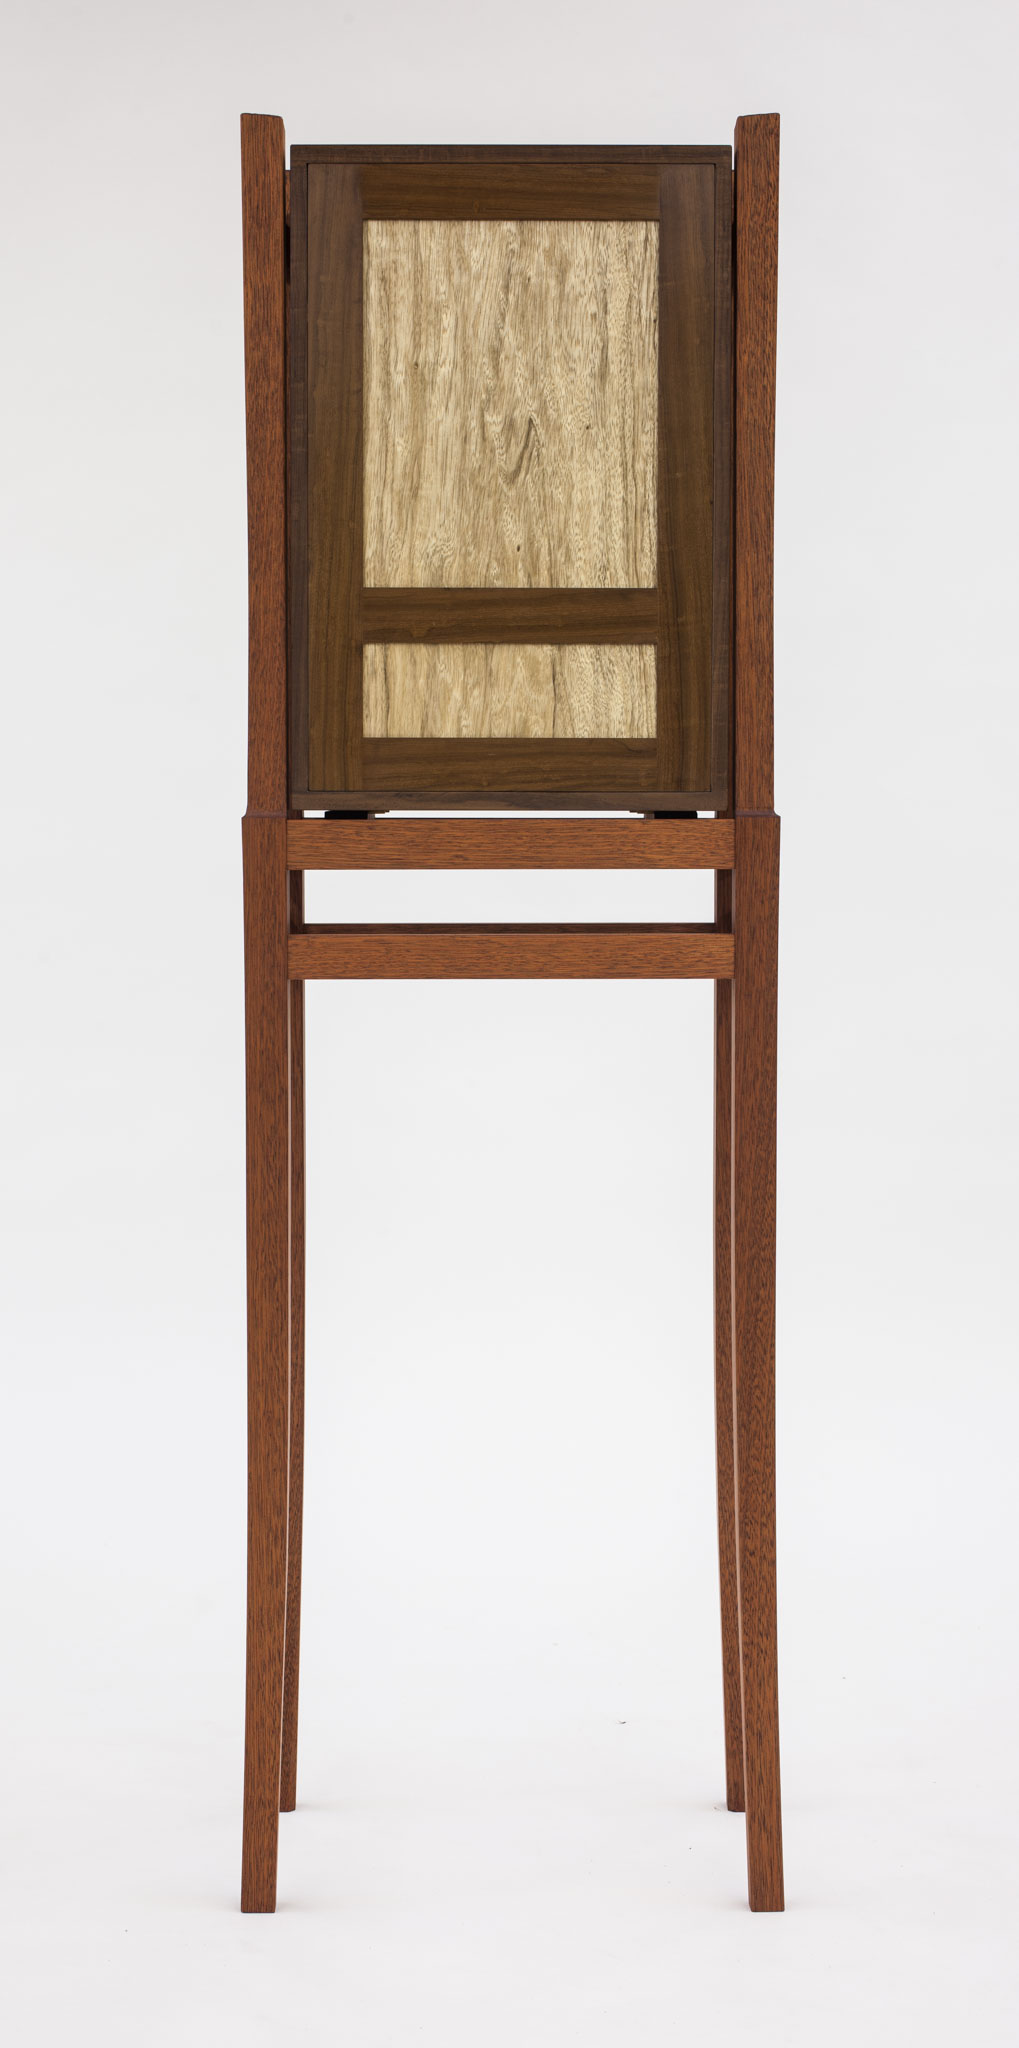 Forest Cabinet On A Stand 171 The Krenov School Of Fine